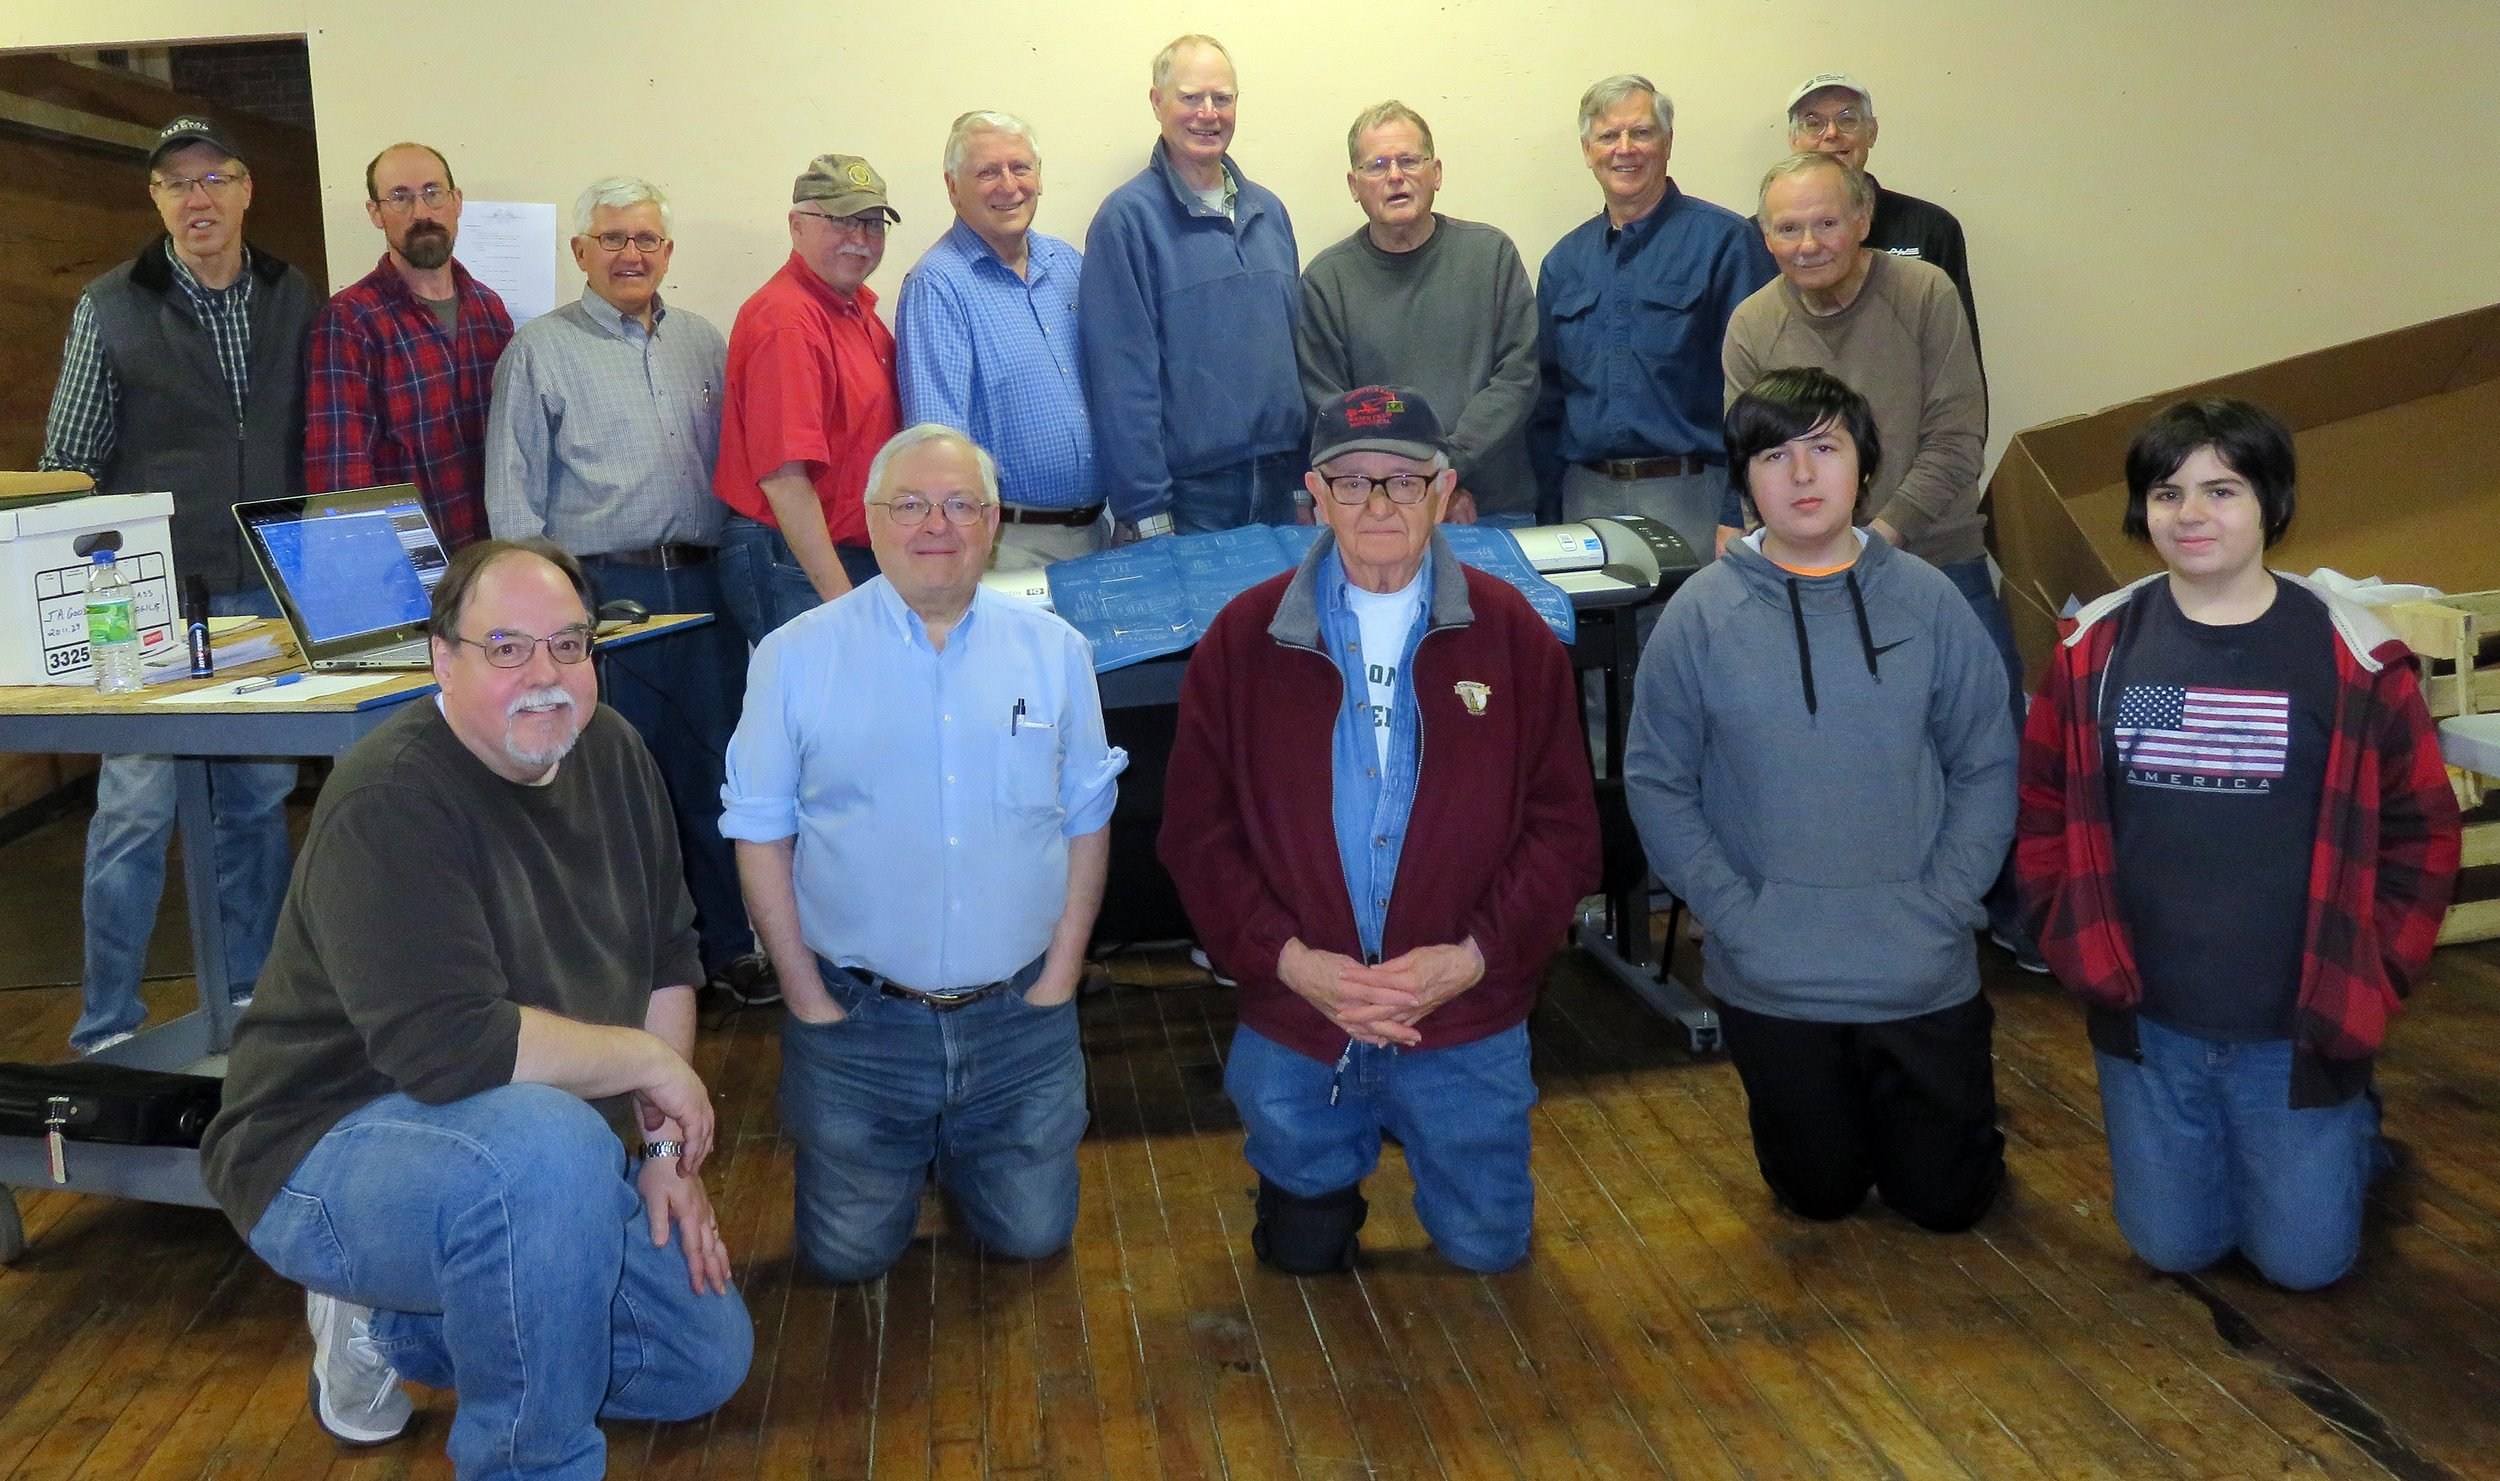 Archives Committee members pause for group shot during work session at North Chelmsford on March 31, 2018. Front row left to right Alan lePain, Rick Hurst, Society President Dan Hyde, Matthew LePain, and Caleb LePain. Back row Jimi Smith, Earl Tuson, Rick Nowell, Jack Madden, Carl Byron, Brad Blodget, Bob Farrenkopf, Coley Walsh, Mal Sockol, and Rick Conard. Alan LePain photo.